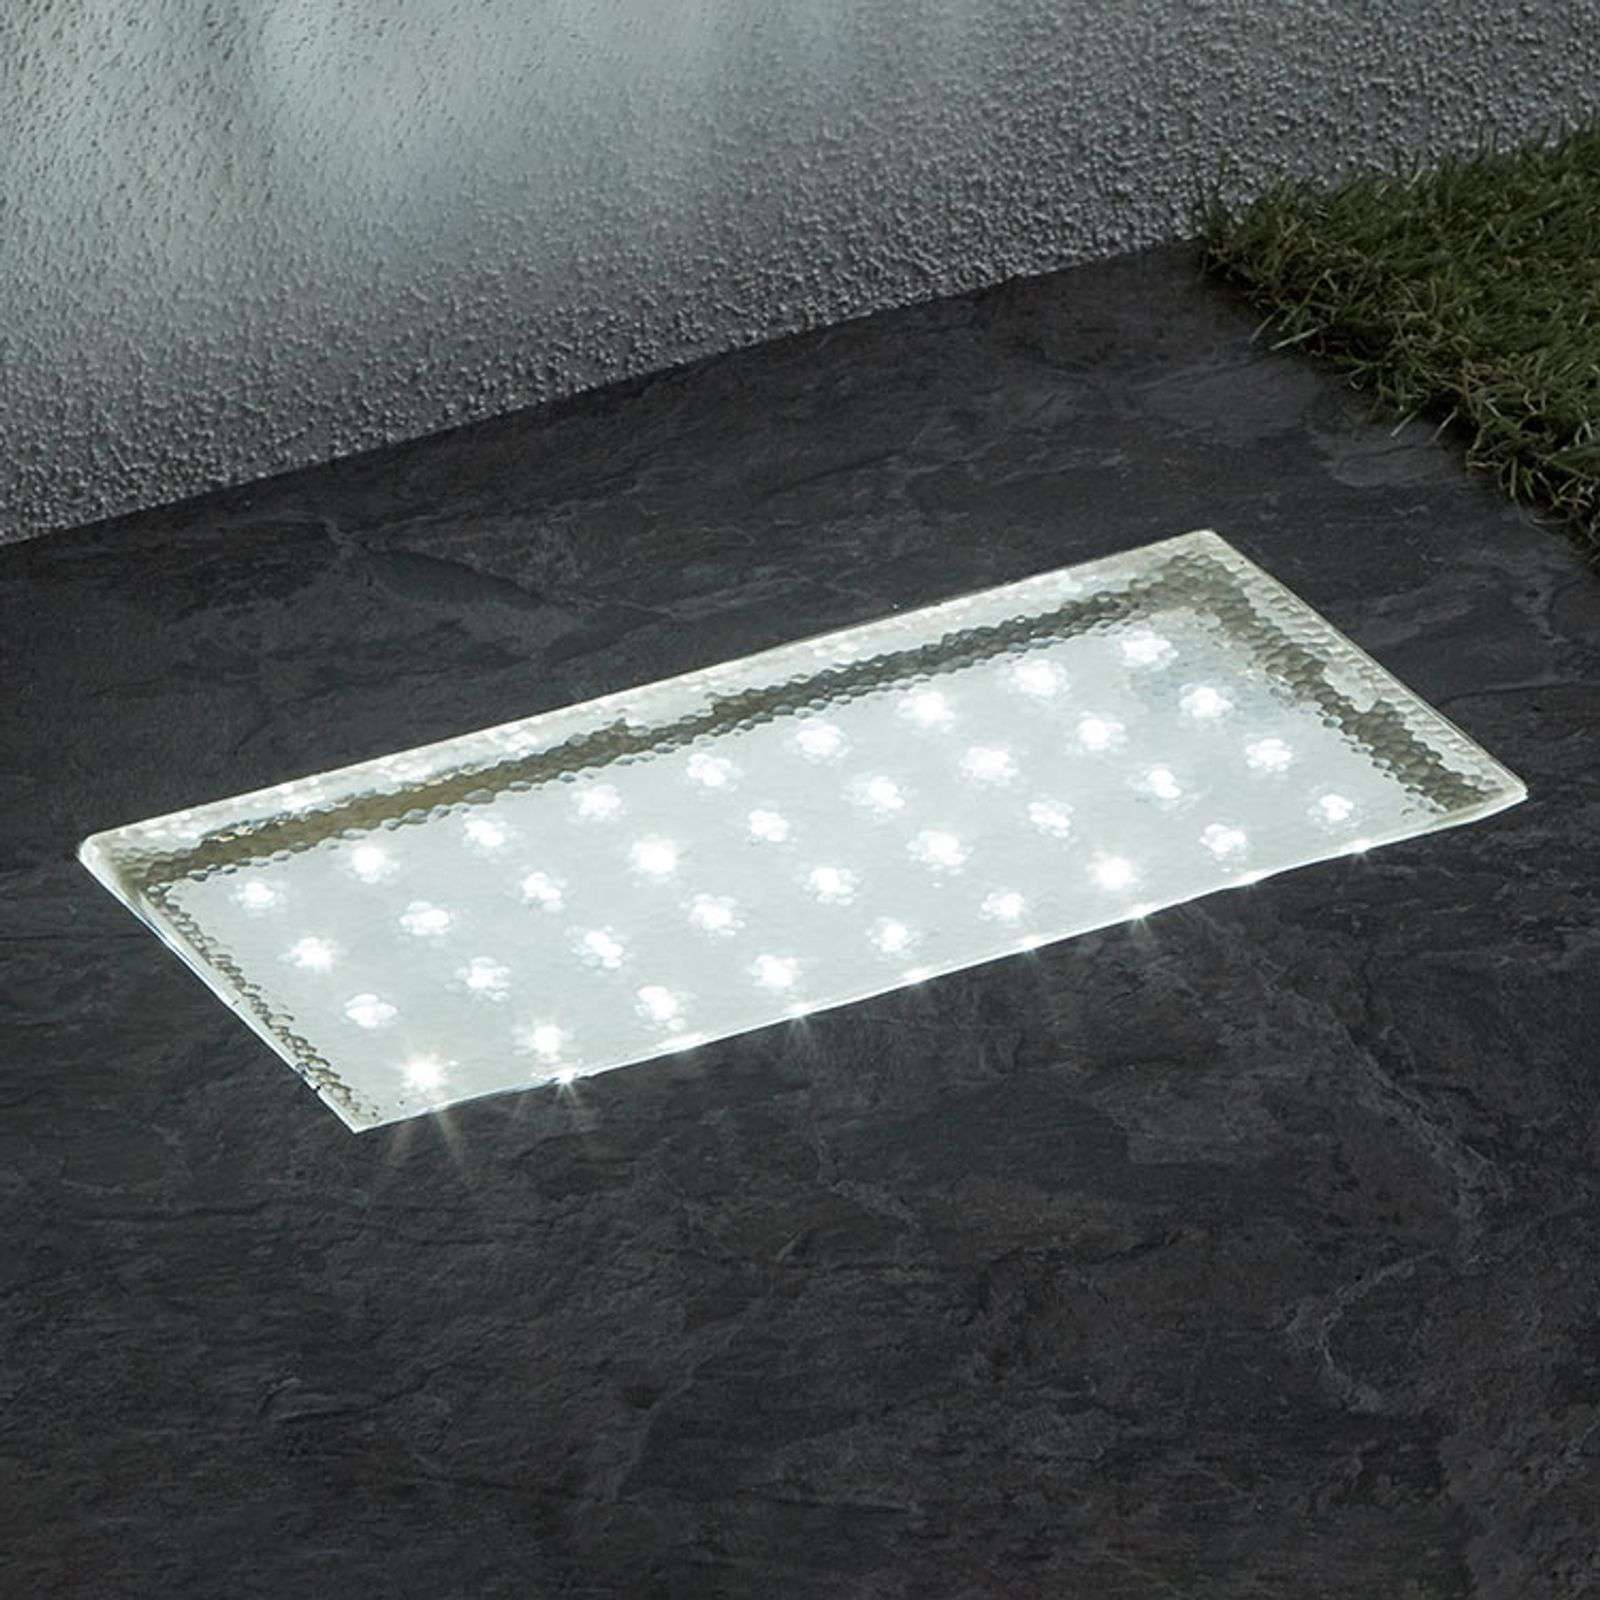 Spot LED encastrable dans le sol Walkover 20 cm